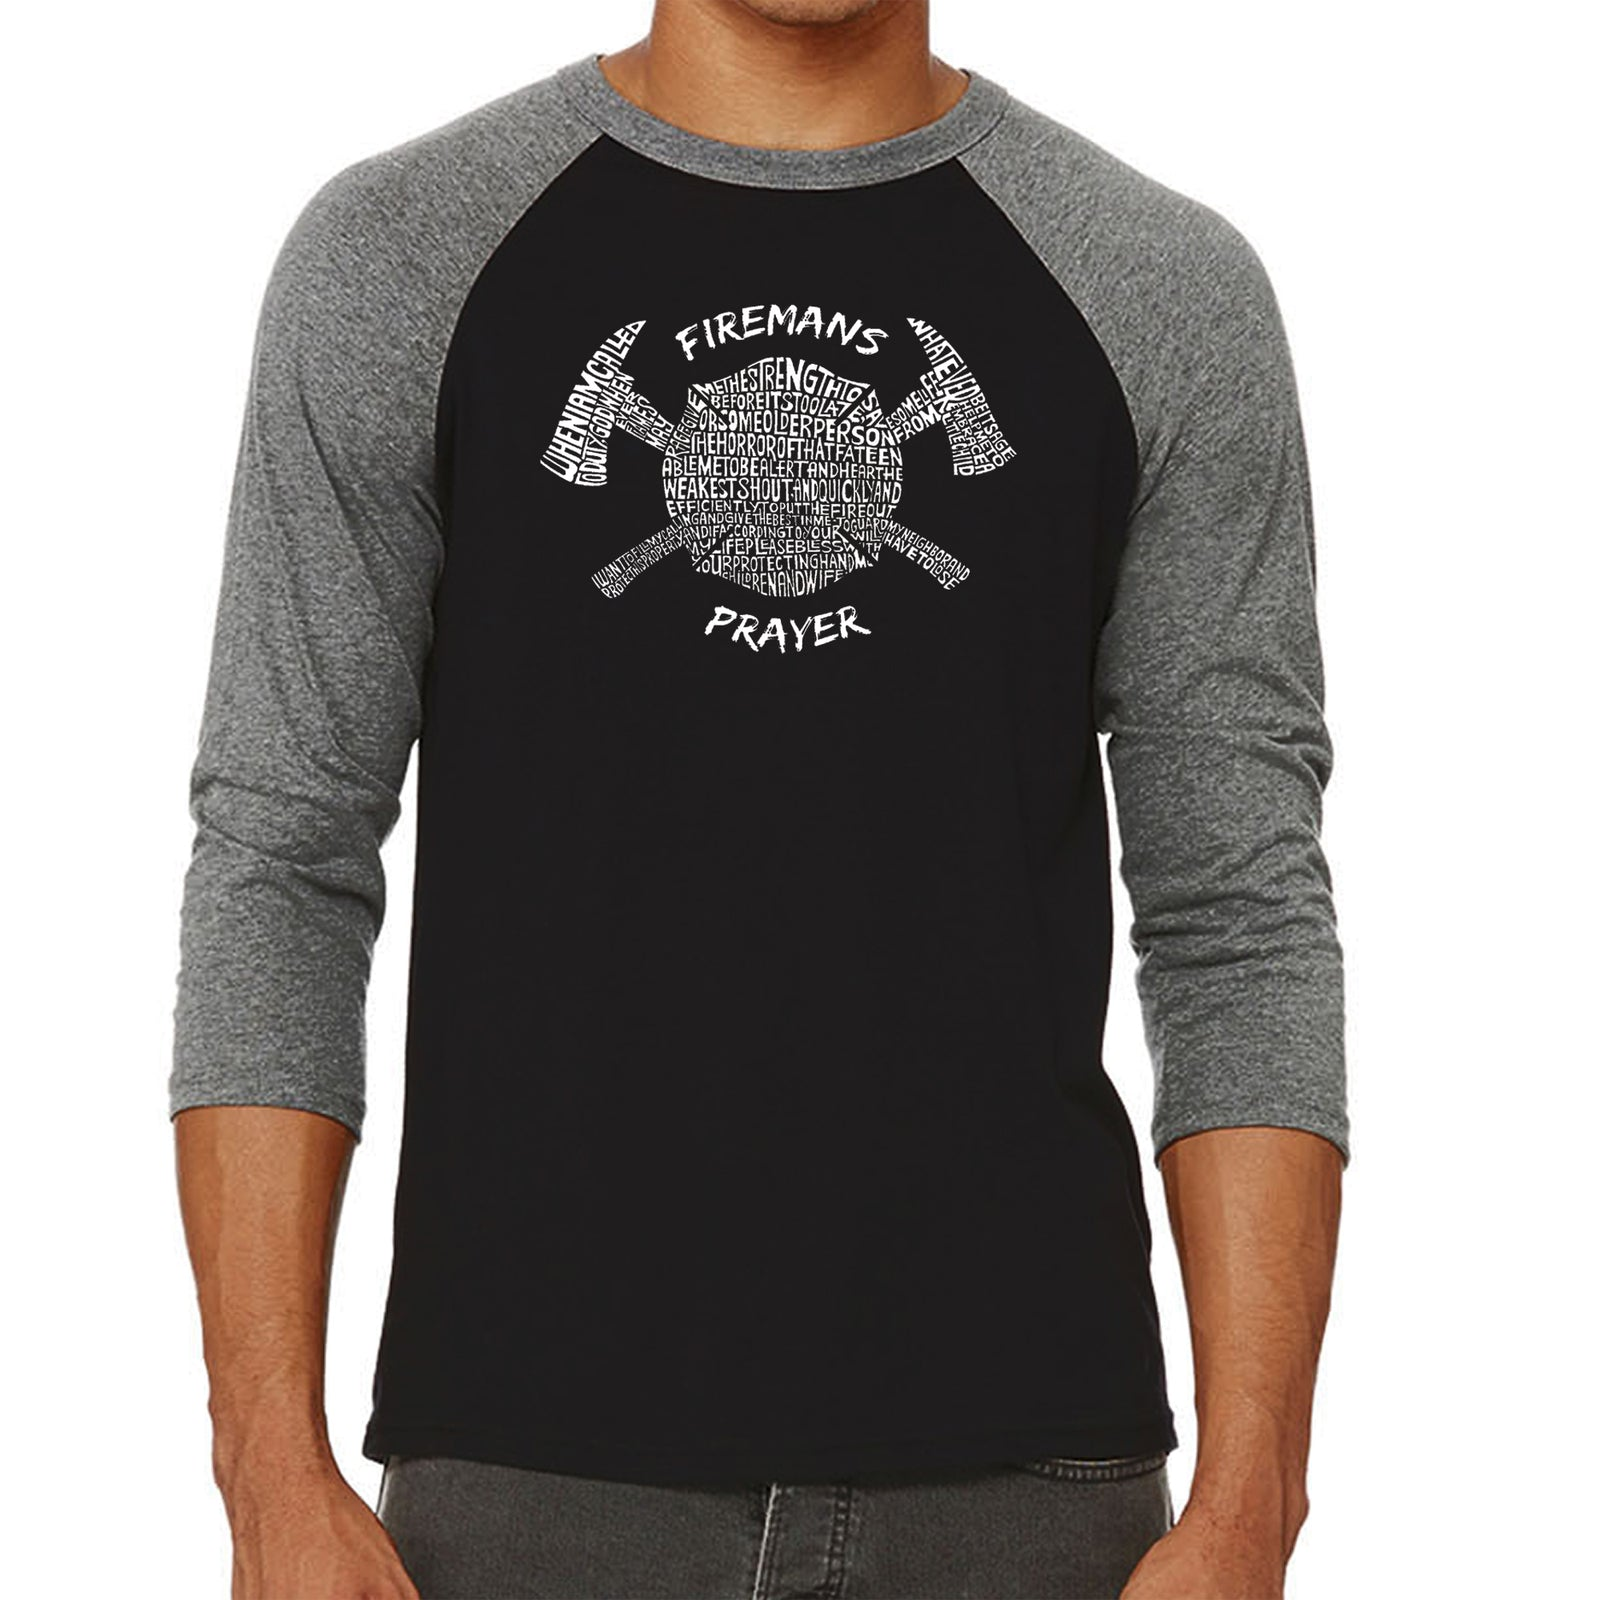 Men's Raglan Baseball Word Art T-shirt - FIREMAN'S PRAYER